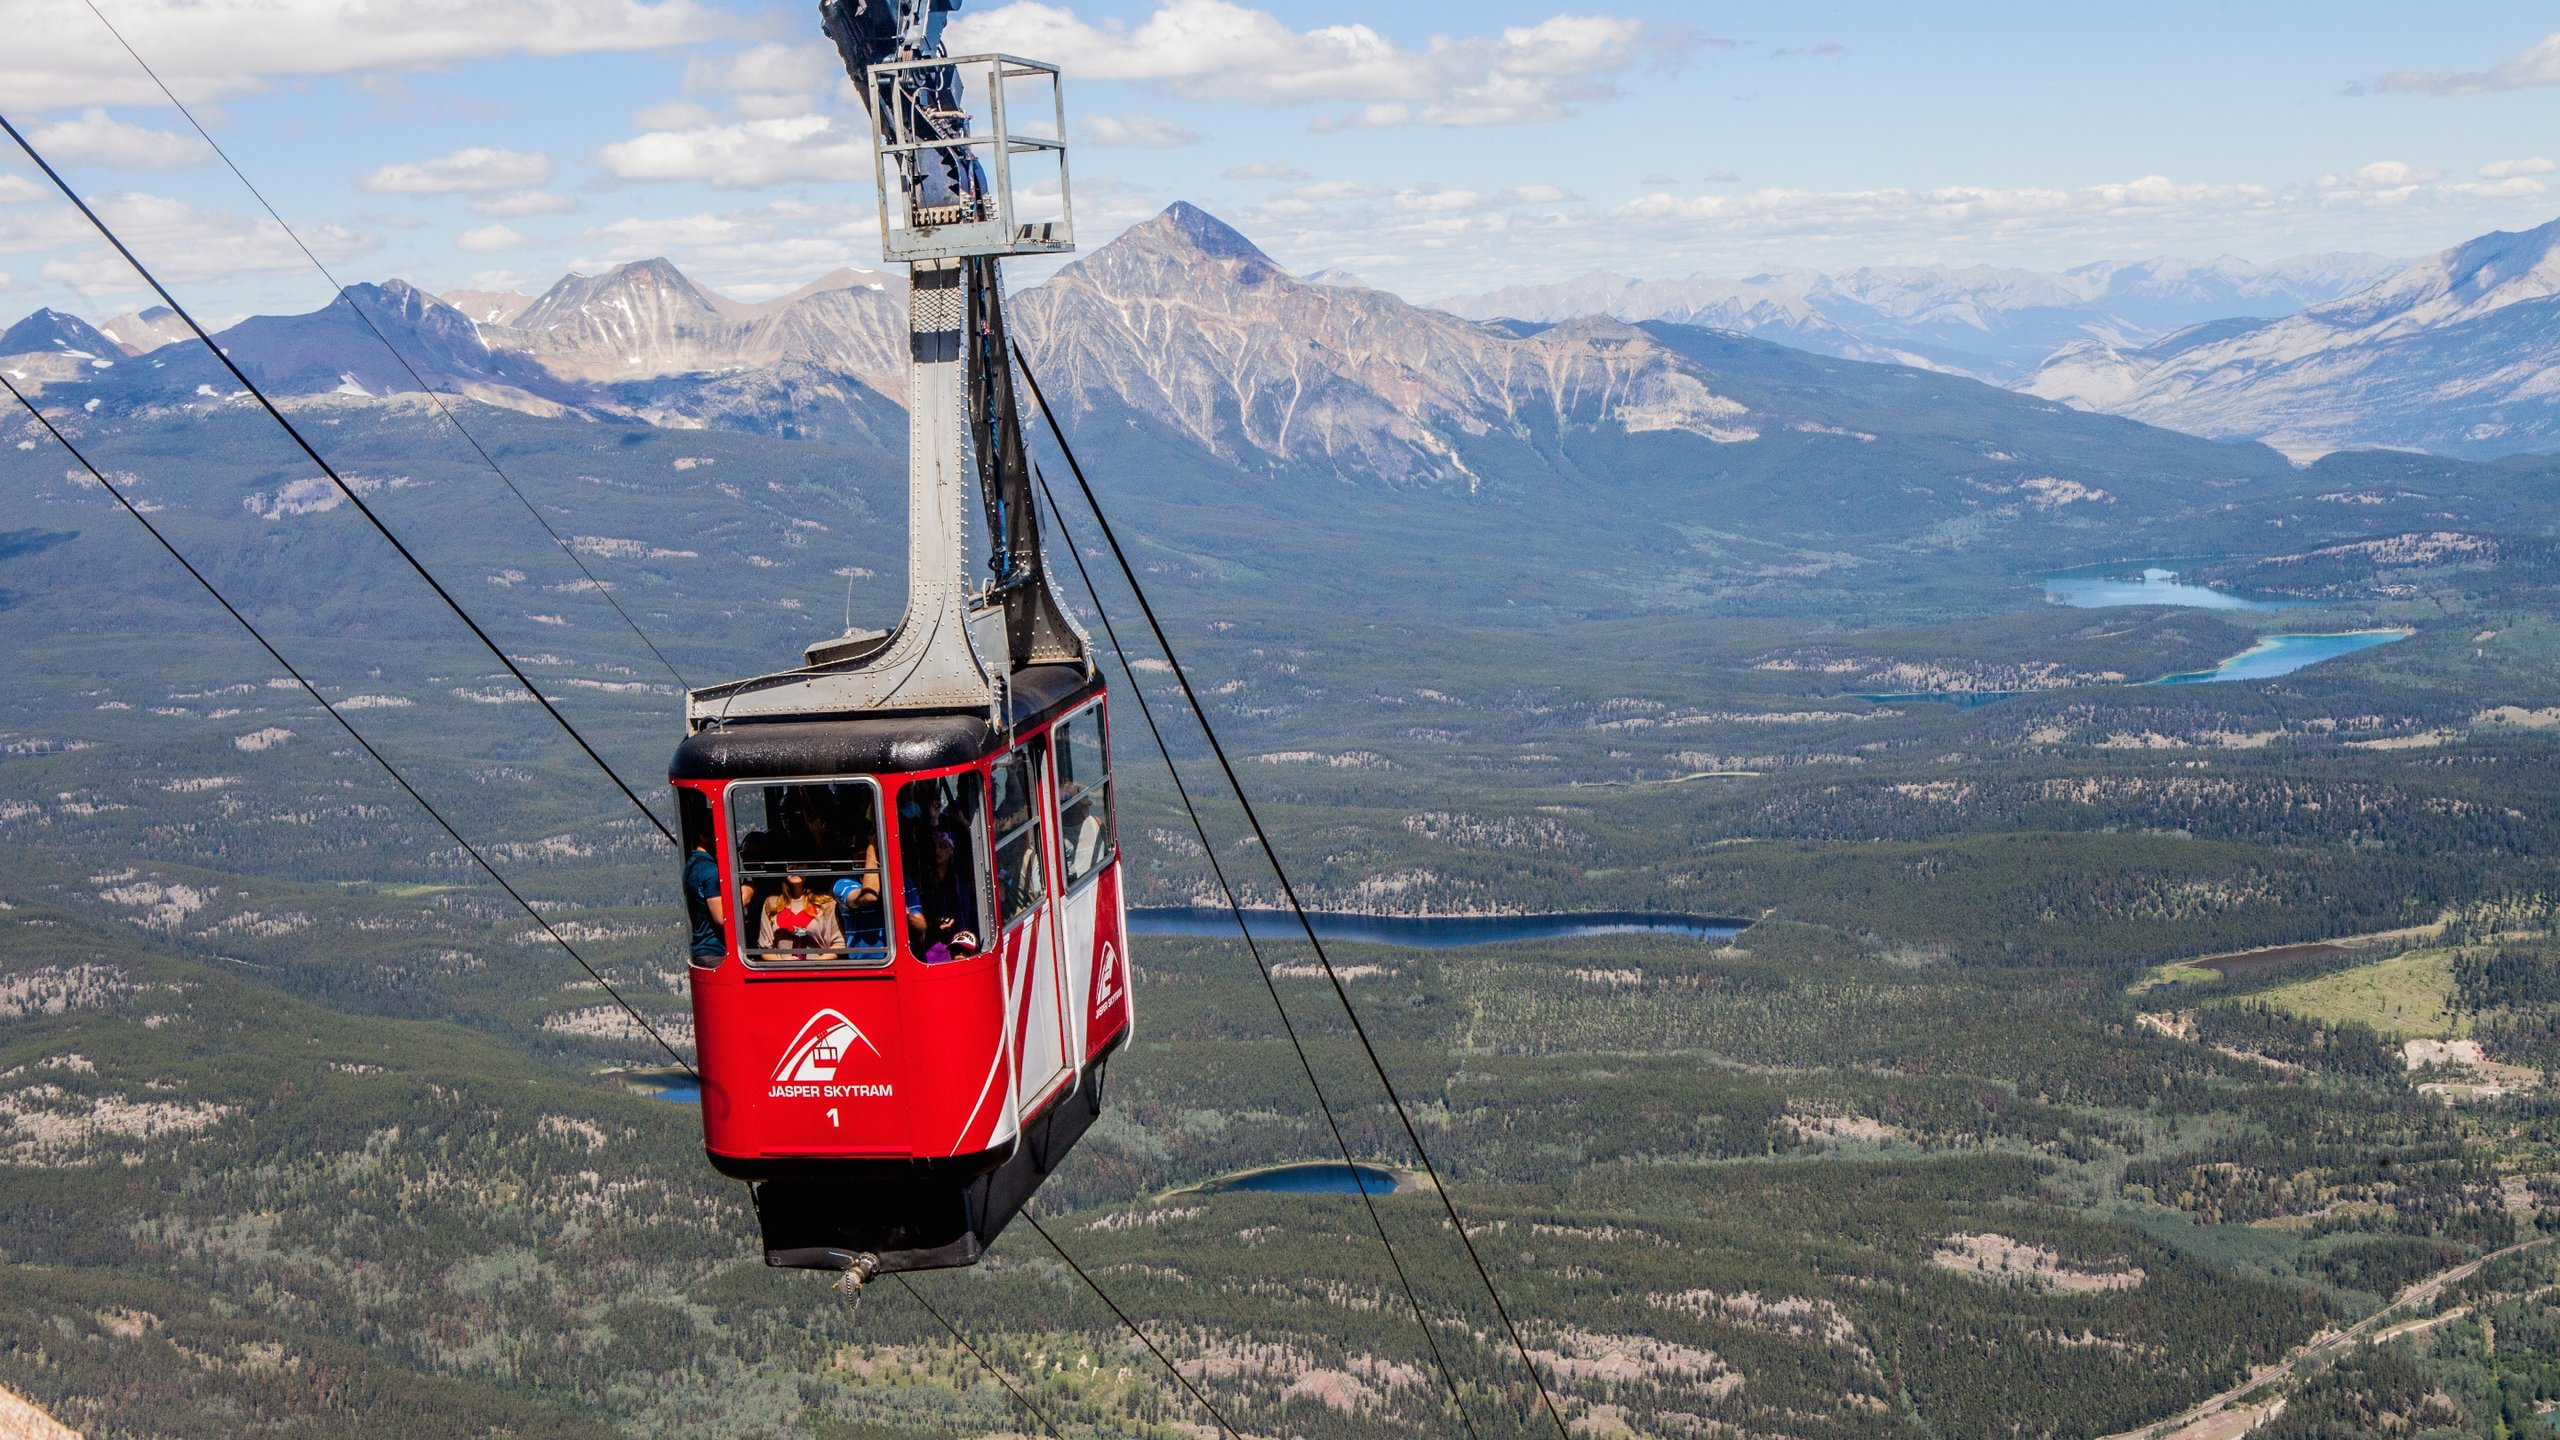 Ride this sightseeing tram up Whistler's Mountain and marvel at a panorama of peaks that includes Mount Robson, the highest point in the Canadian Rockies.